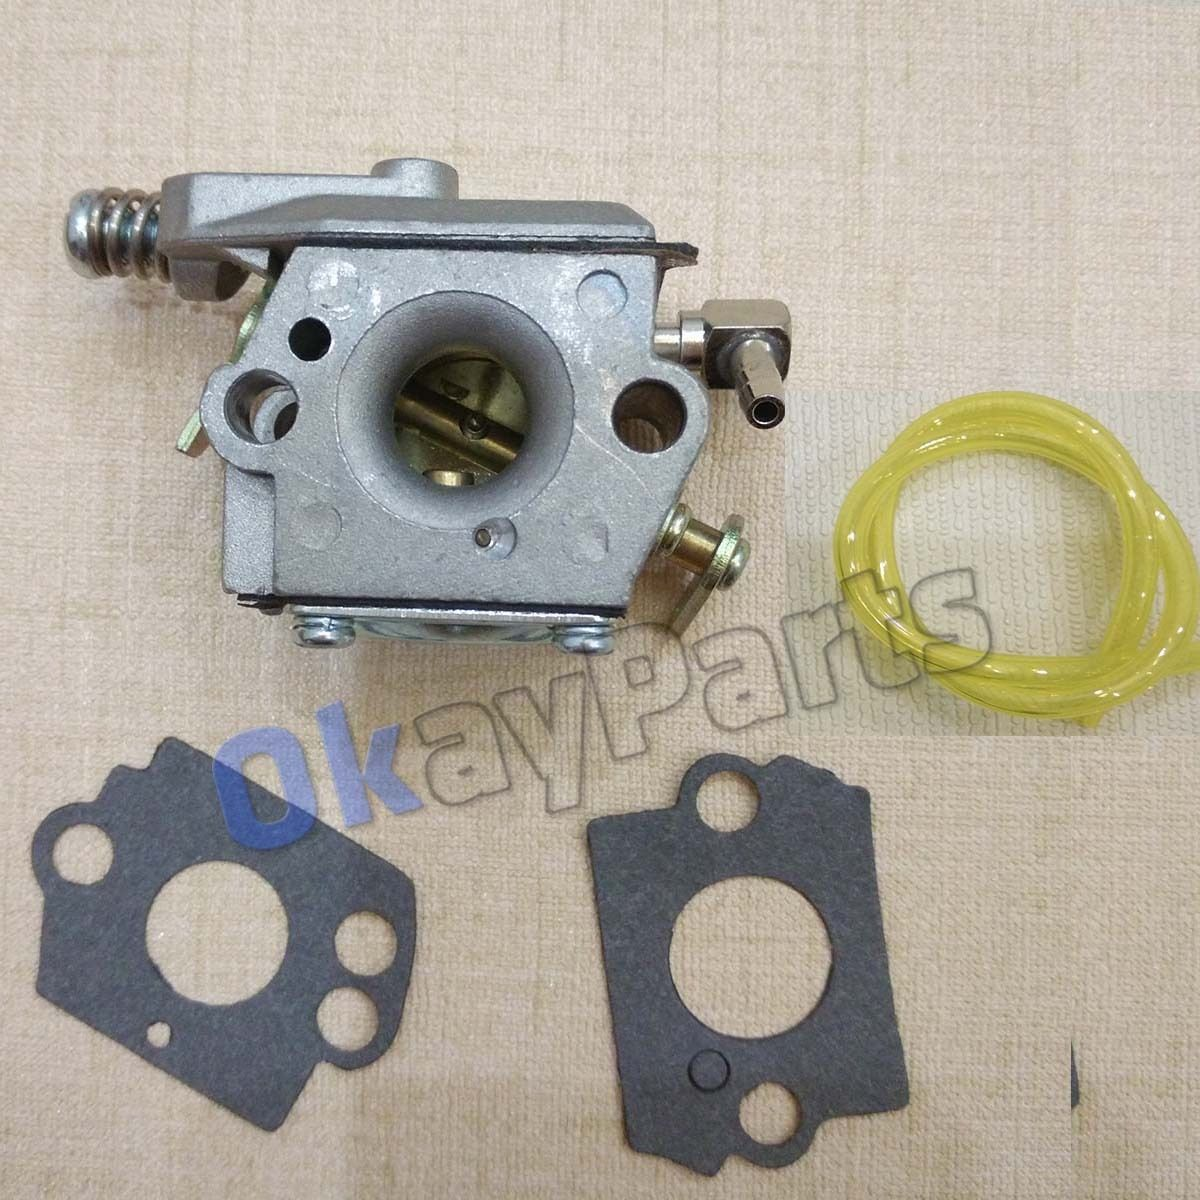 CARBURETOR Carb for Strike Master Jiffy Ice Auger 50667 replaces